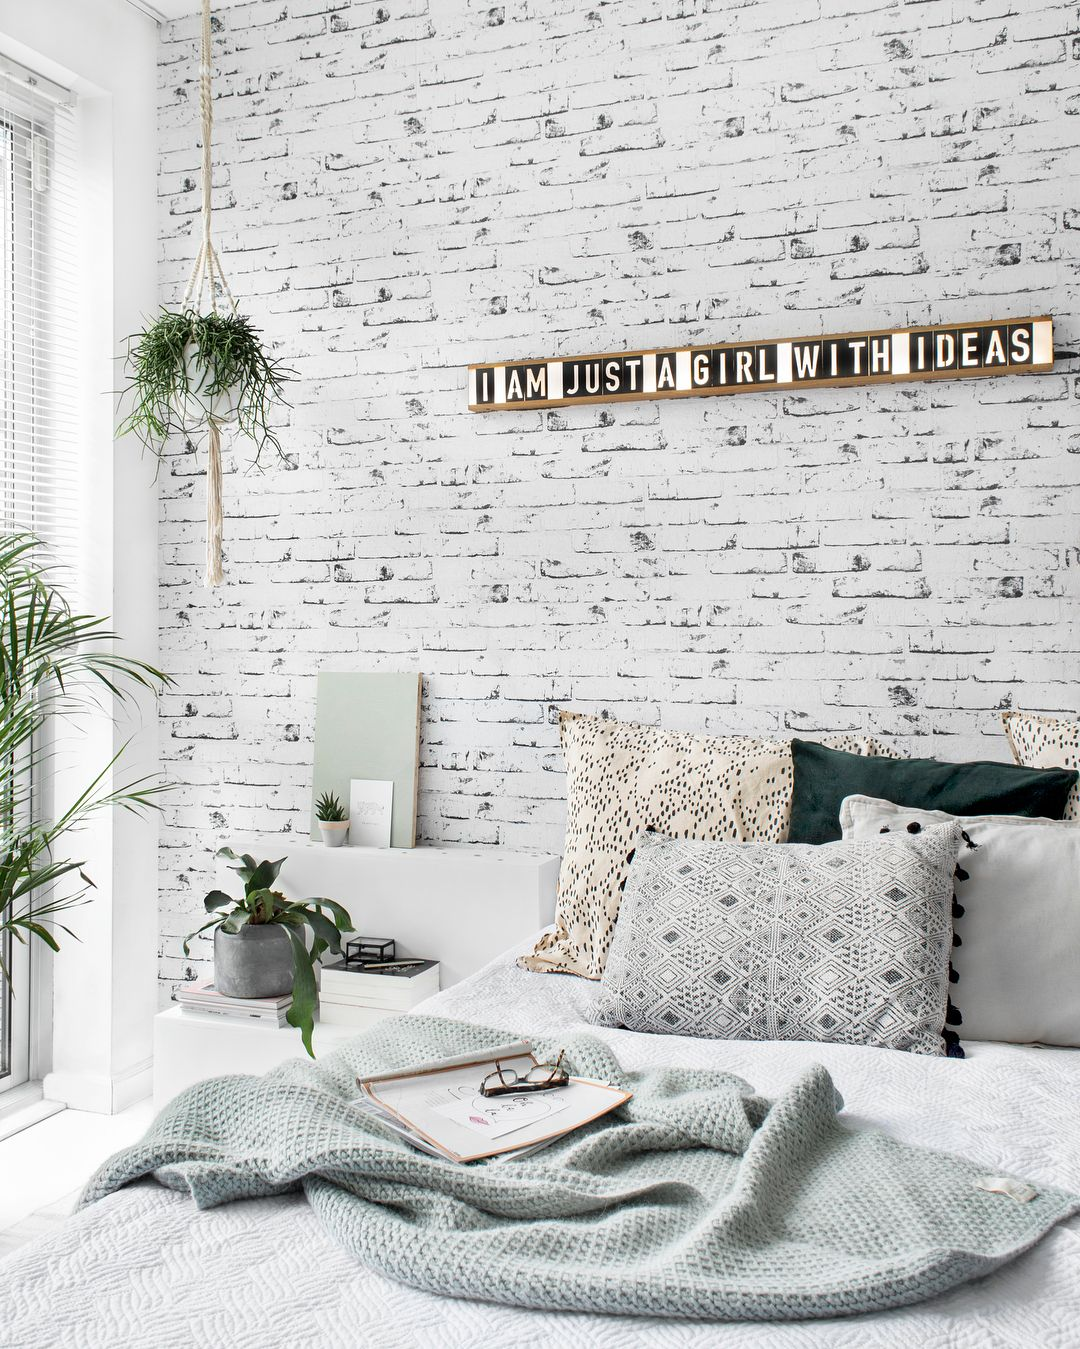 Bedroom Zo Fijn Een Lichte En Rustige Slaapkamer Fijne Avond Allemaal Sukha Lood Feature Wall Bedroom Brick Wall Bedroom Wallpaper Bedroom Feature Wall